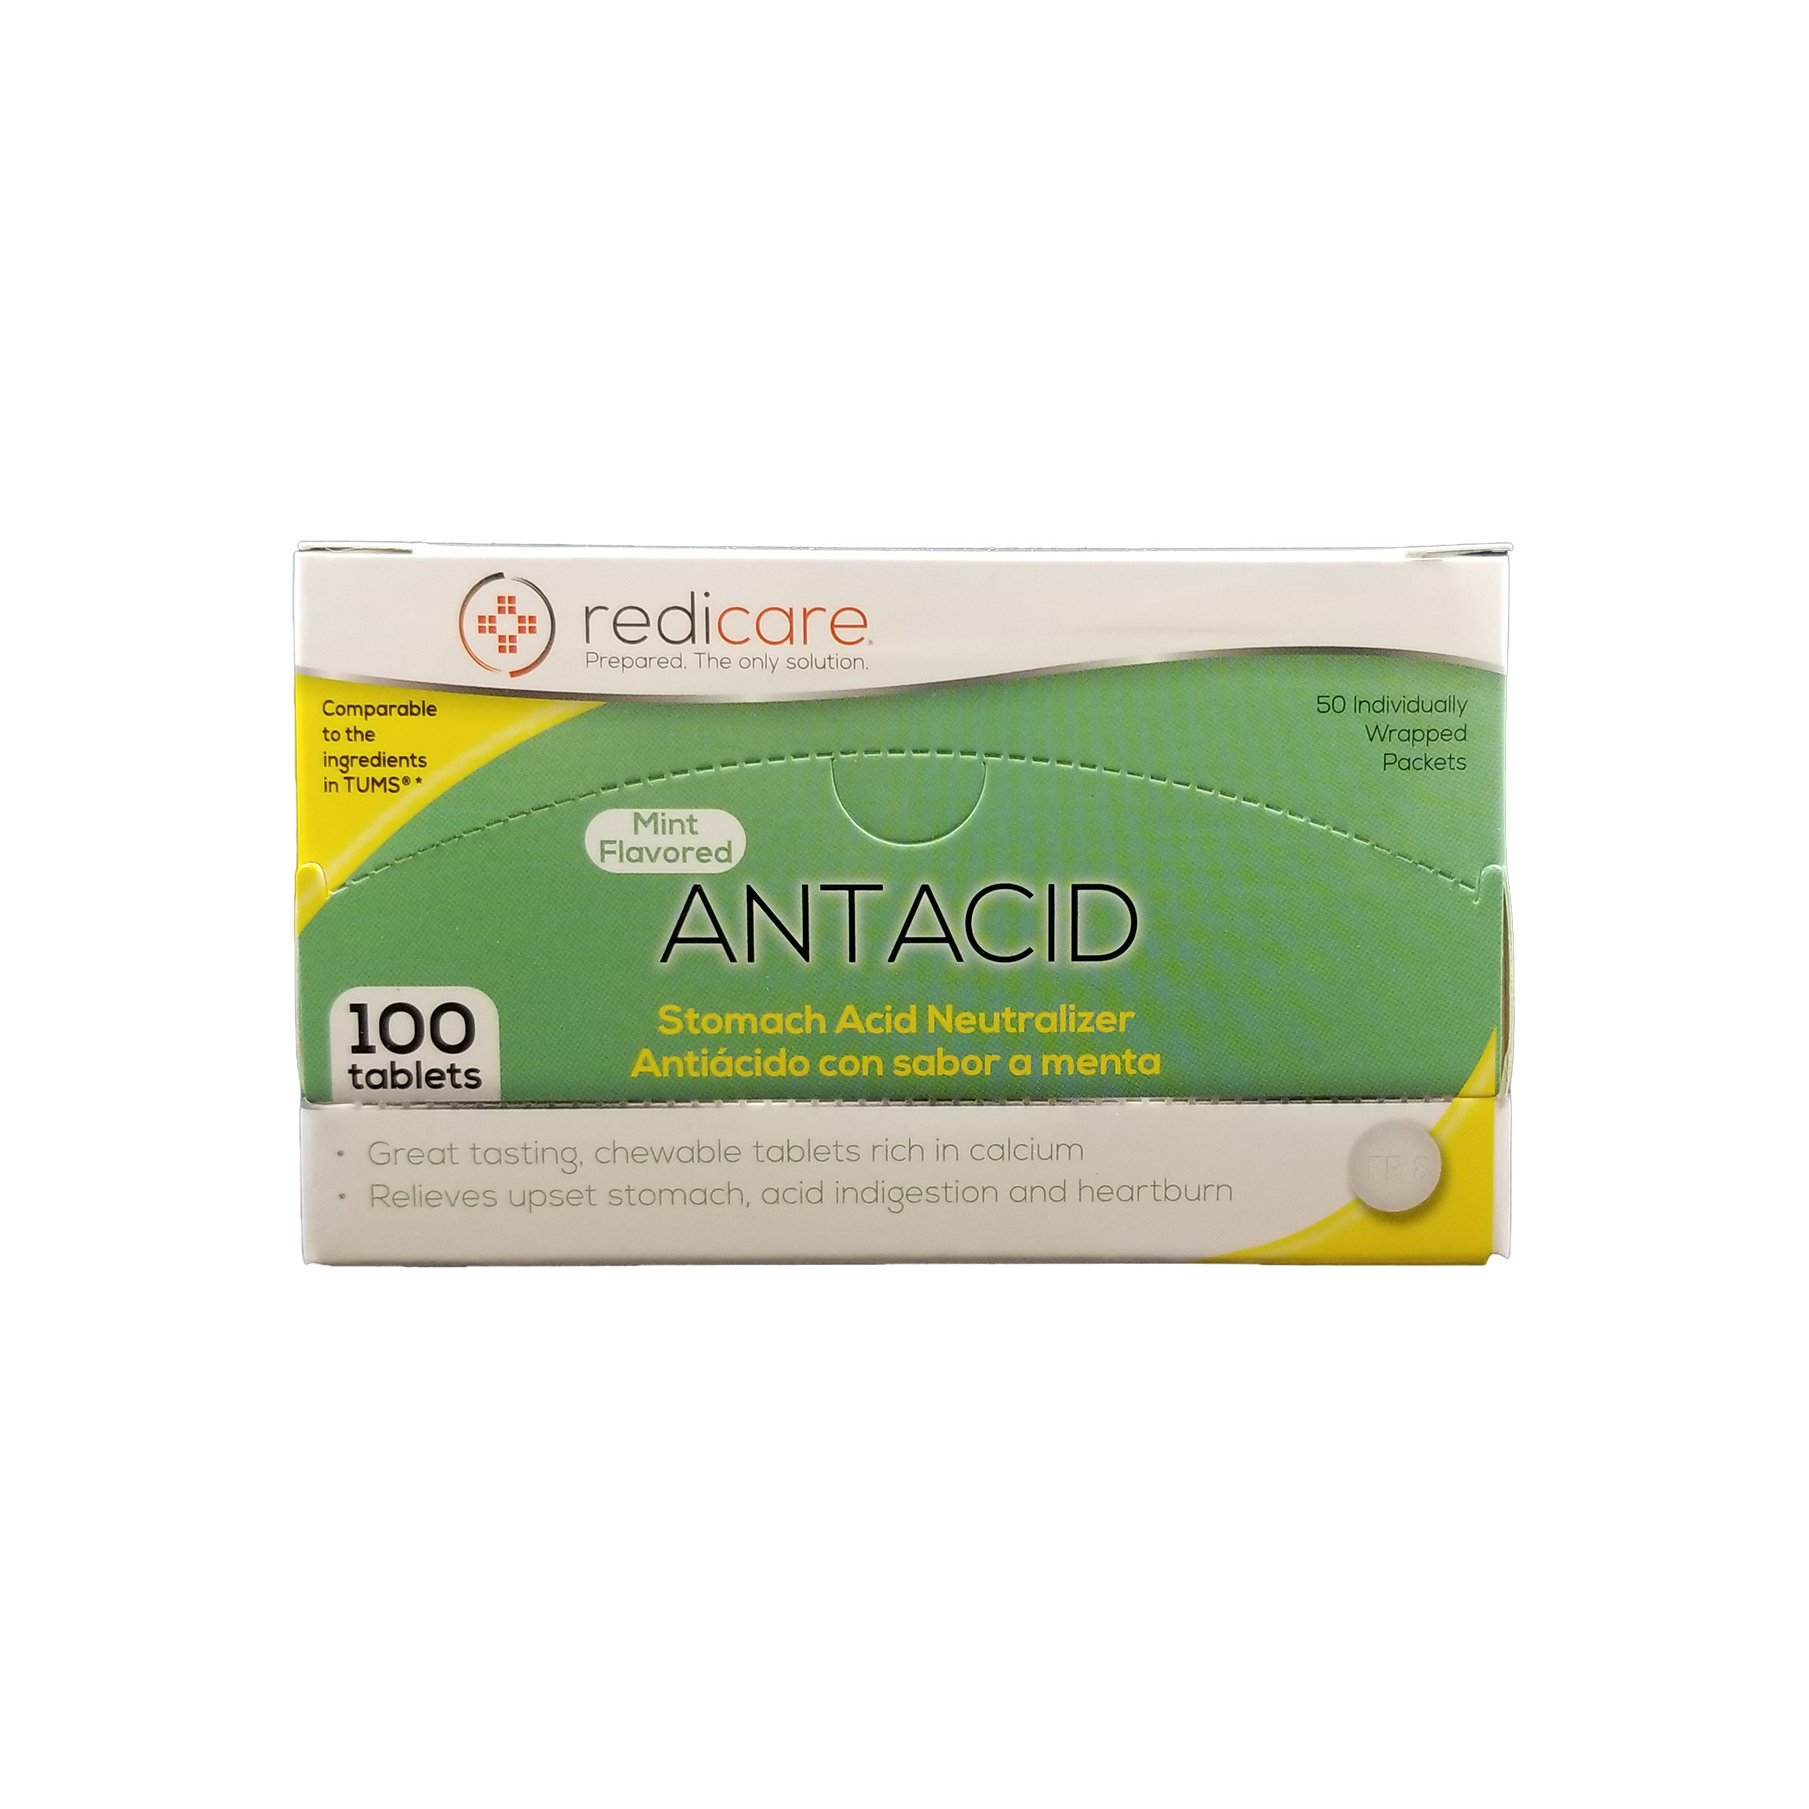 Mint Flavored Antacid Travel Packets with dispenser box - Great for First Aid Kit and workplaces